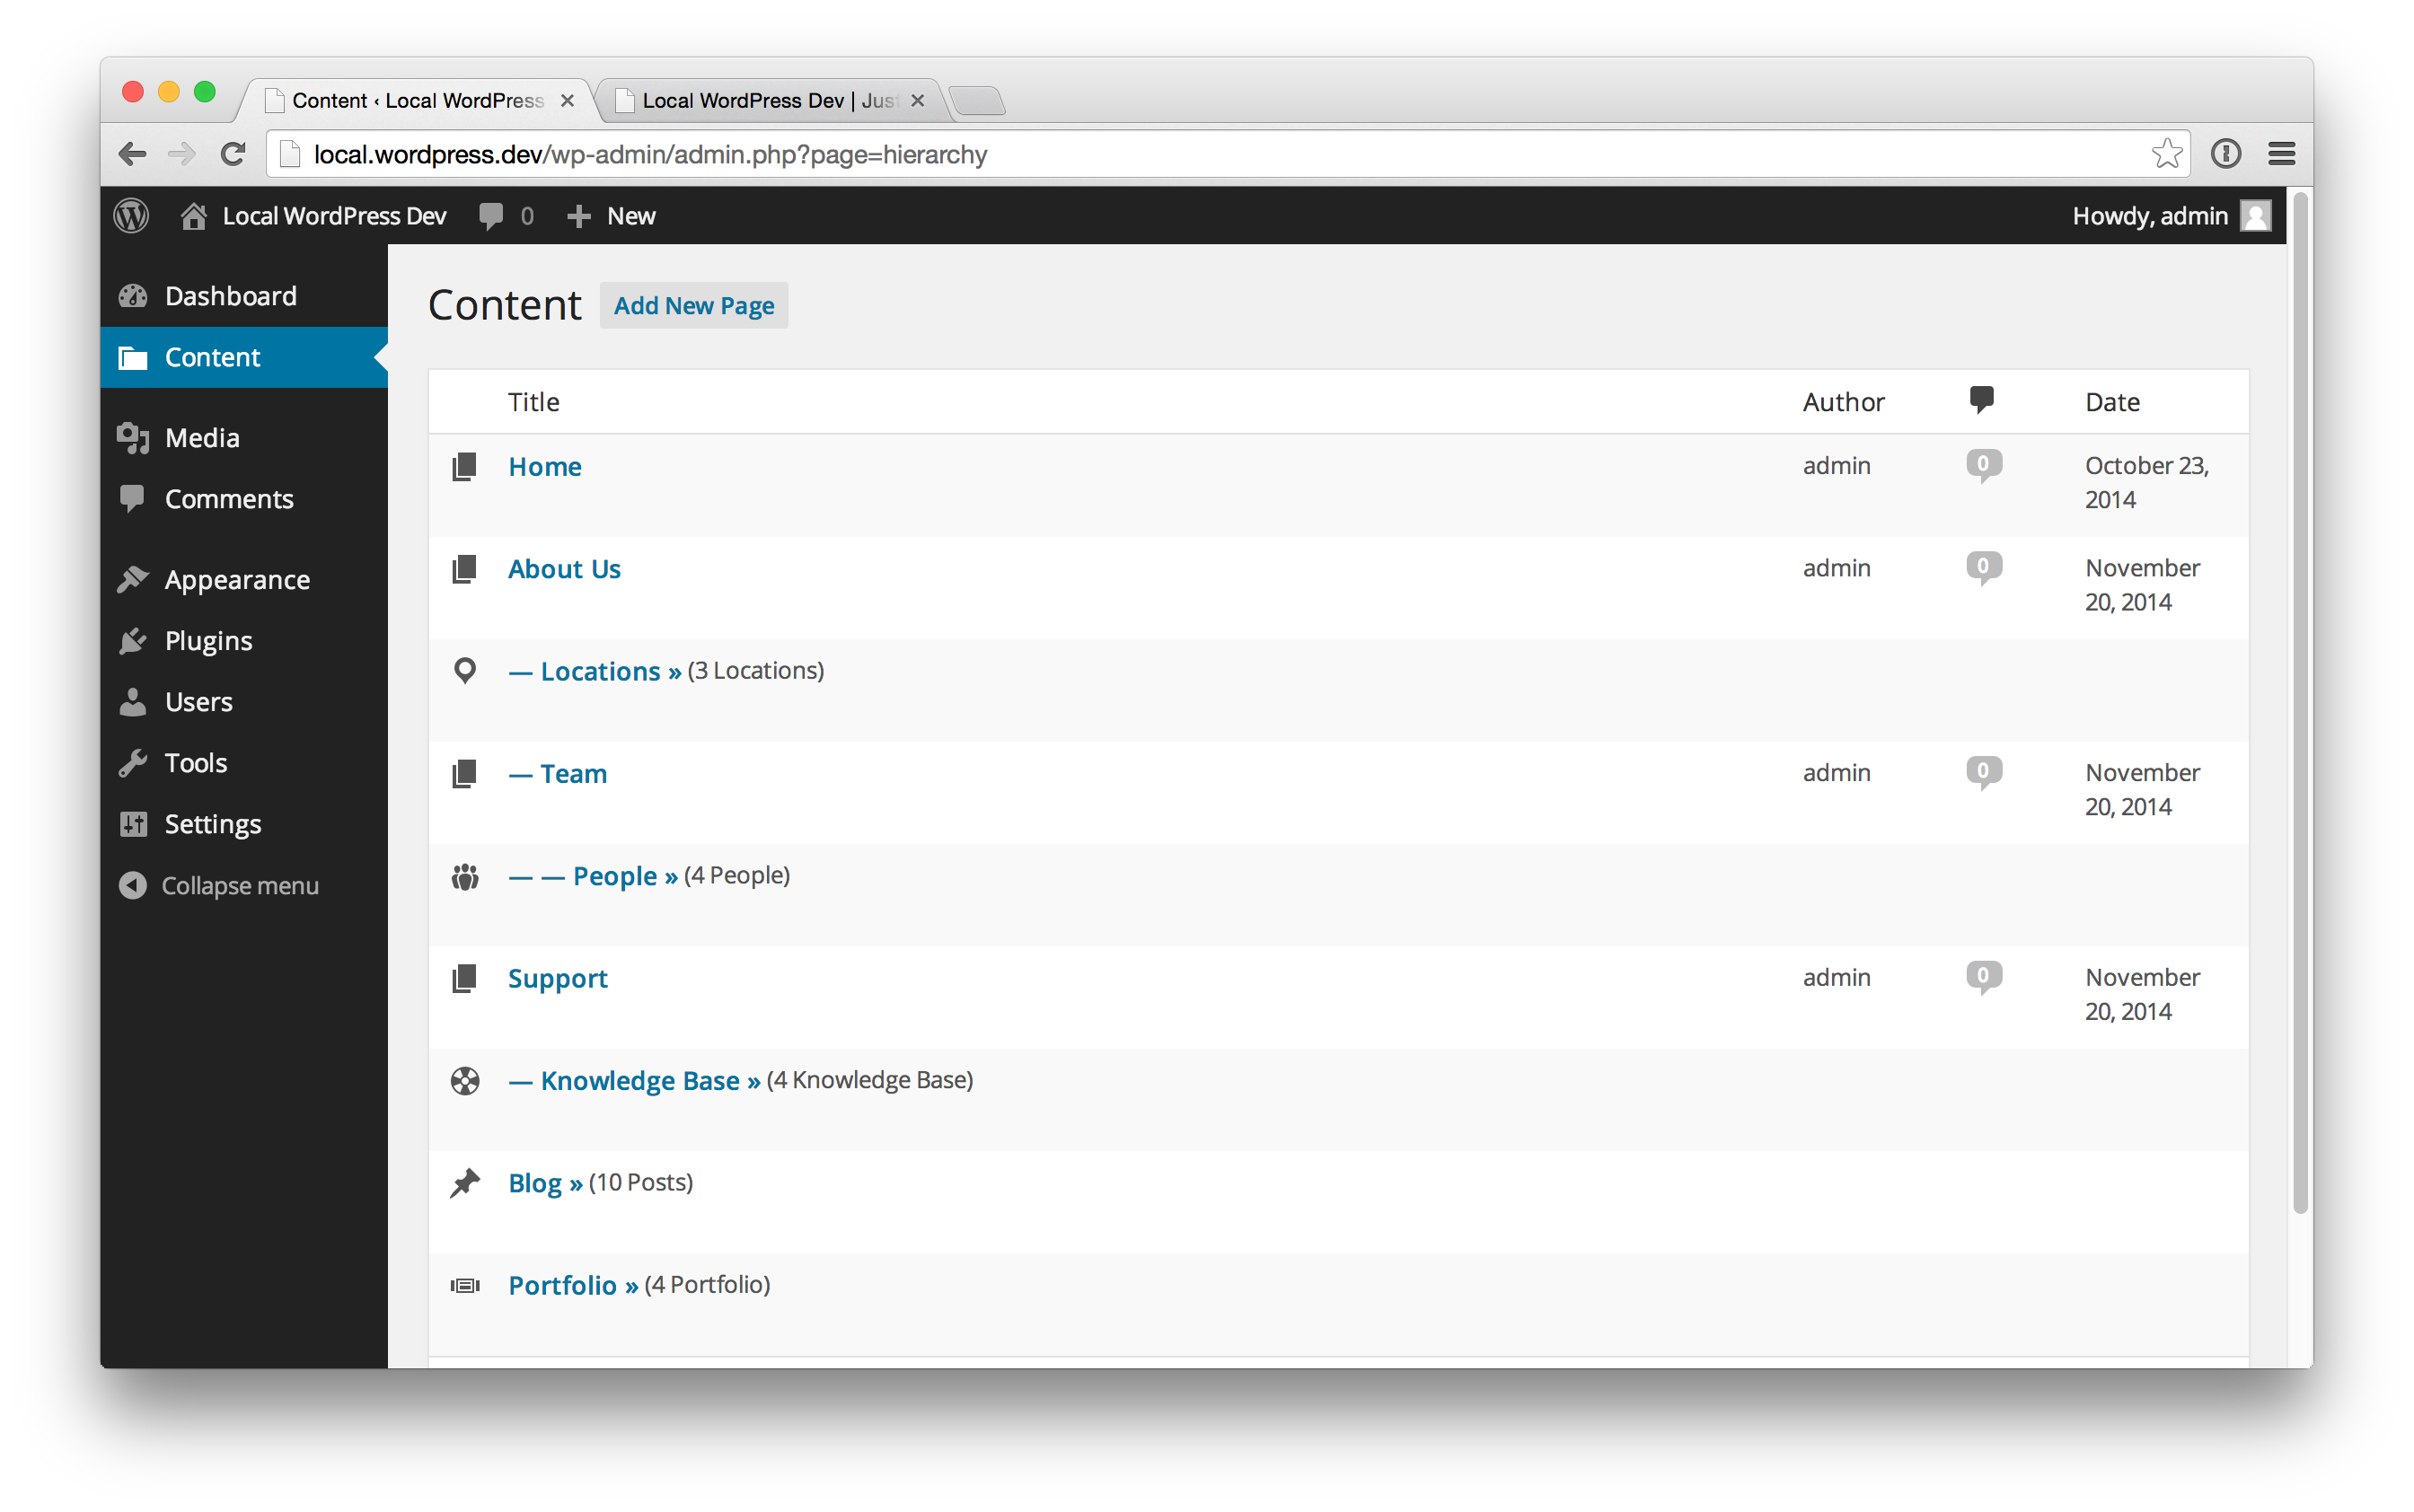 Hierarchy integrates CPT edit links within your Pages and hides them from the Admin Menu